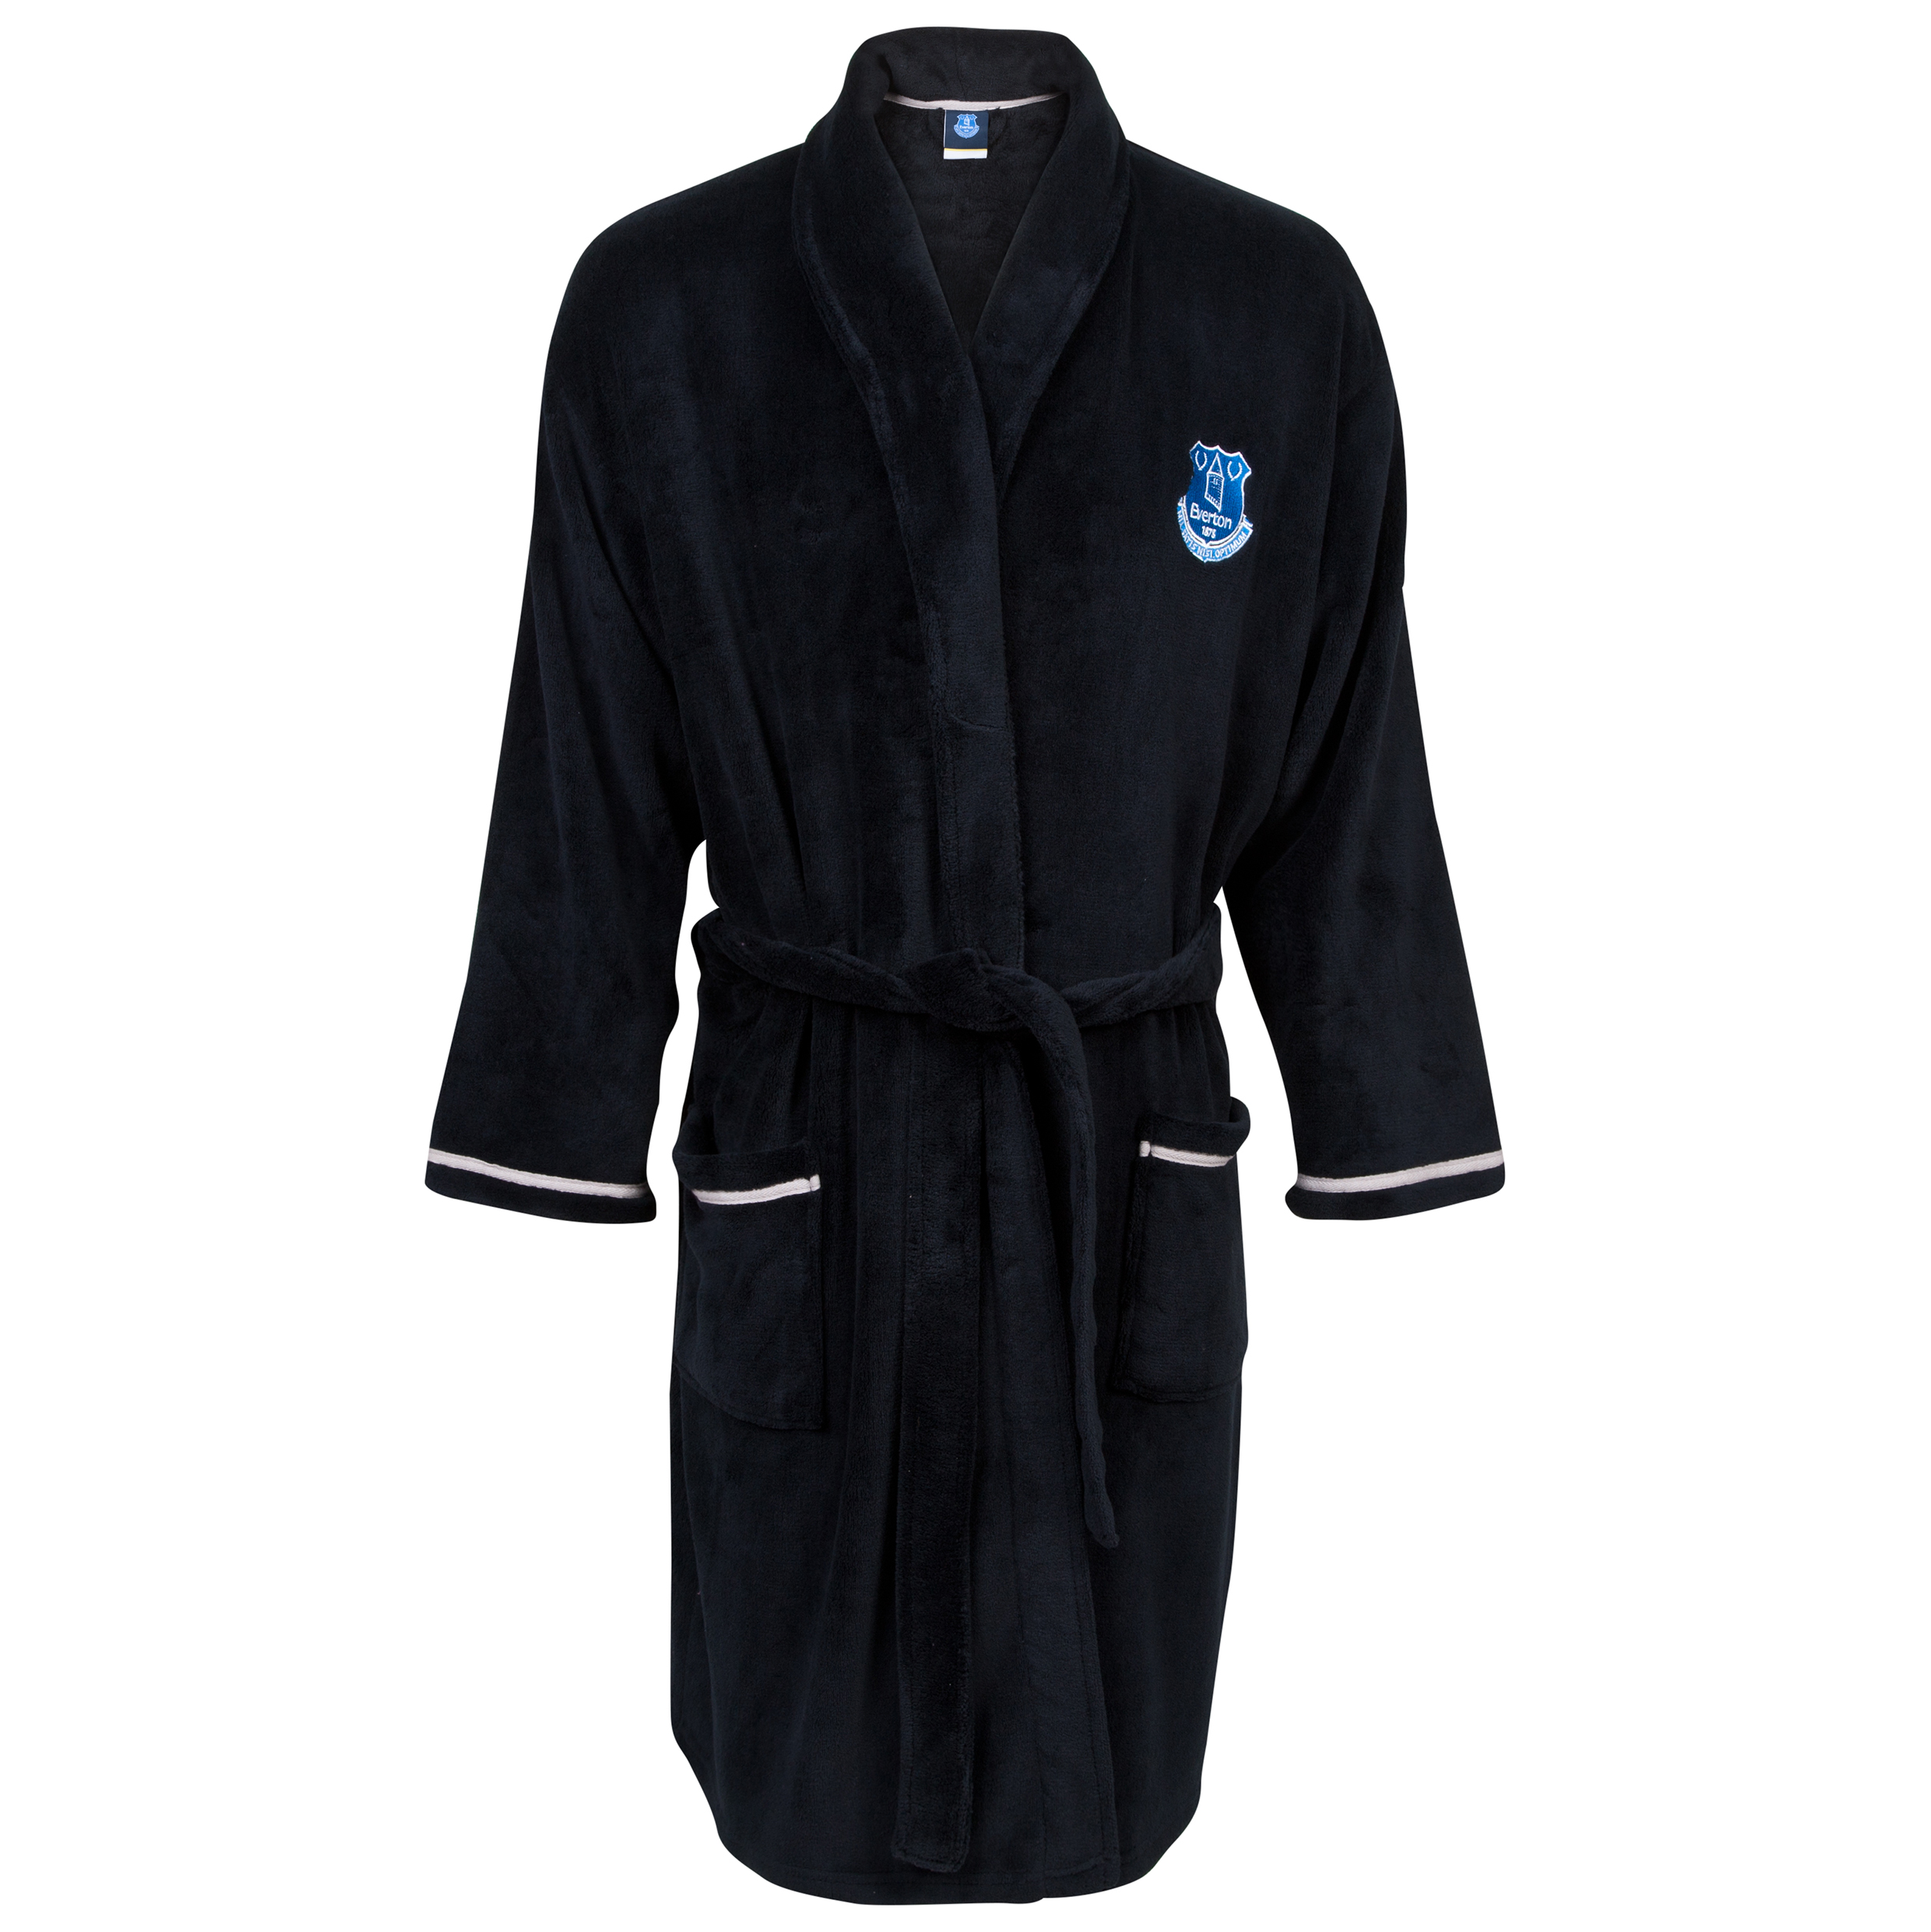 Everton Robe - Black -Mens